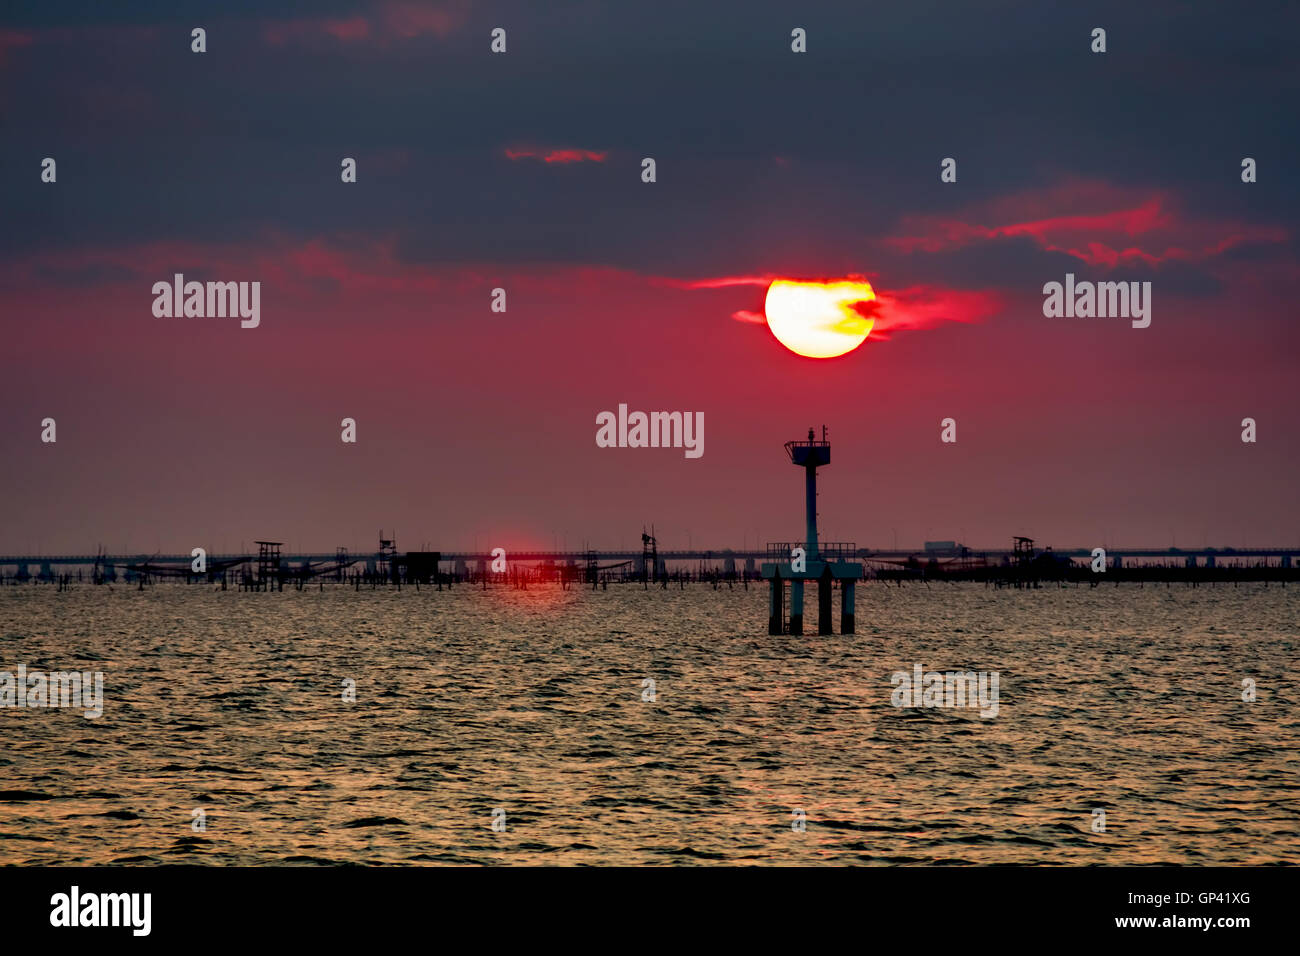 Partly cloudy sunset reflection sea. - Stock Image